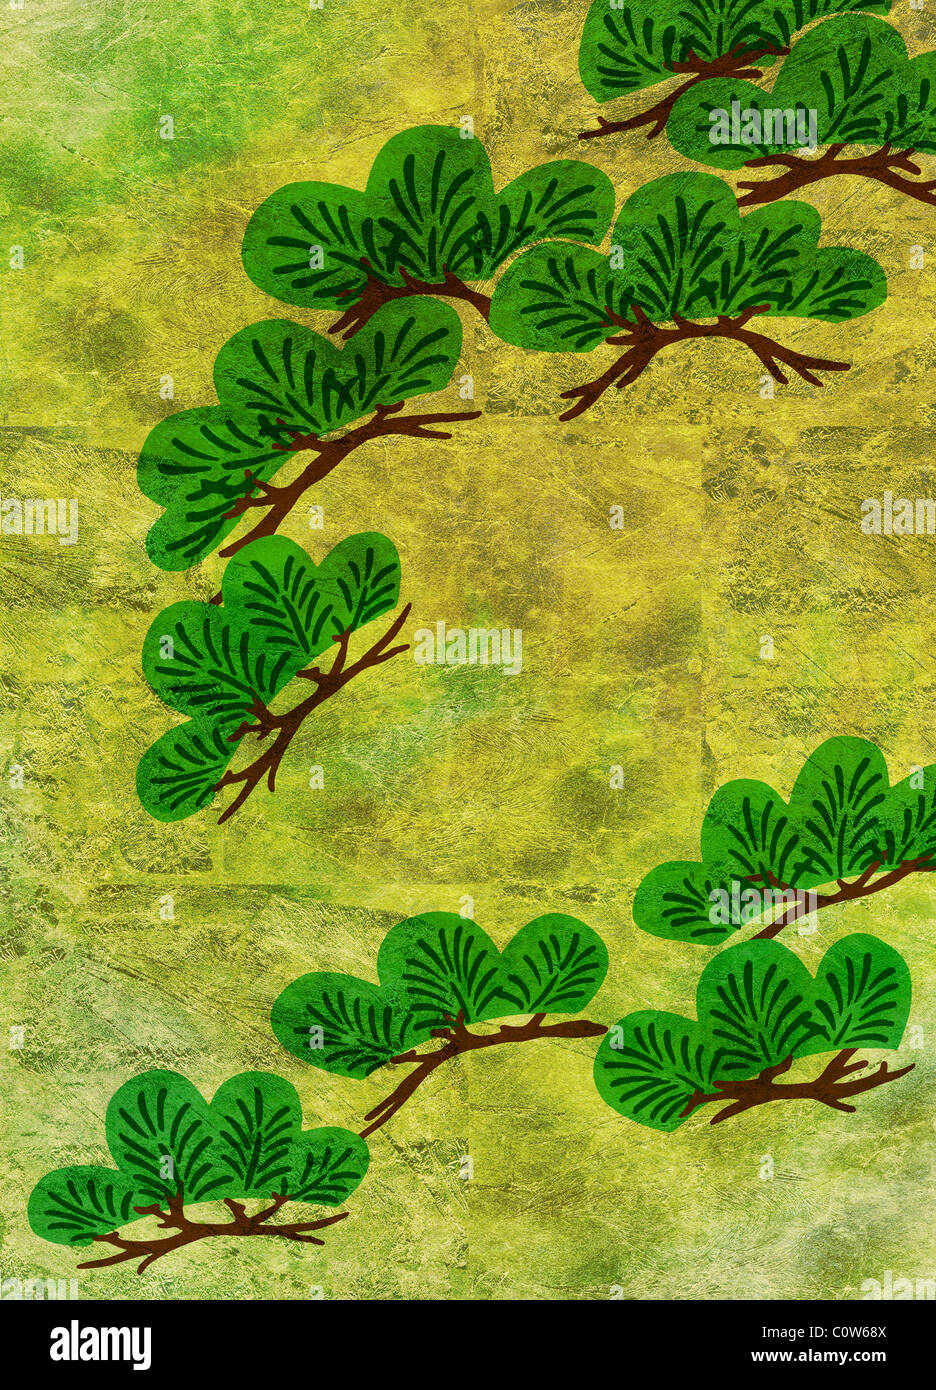 Pine Trees on Gold Backgrounds - Stock Image